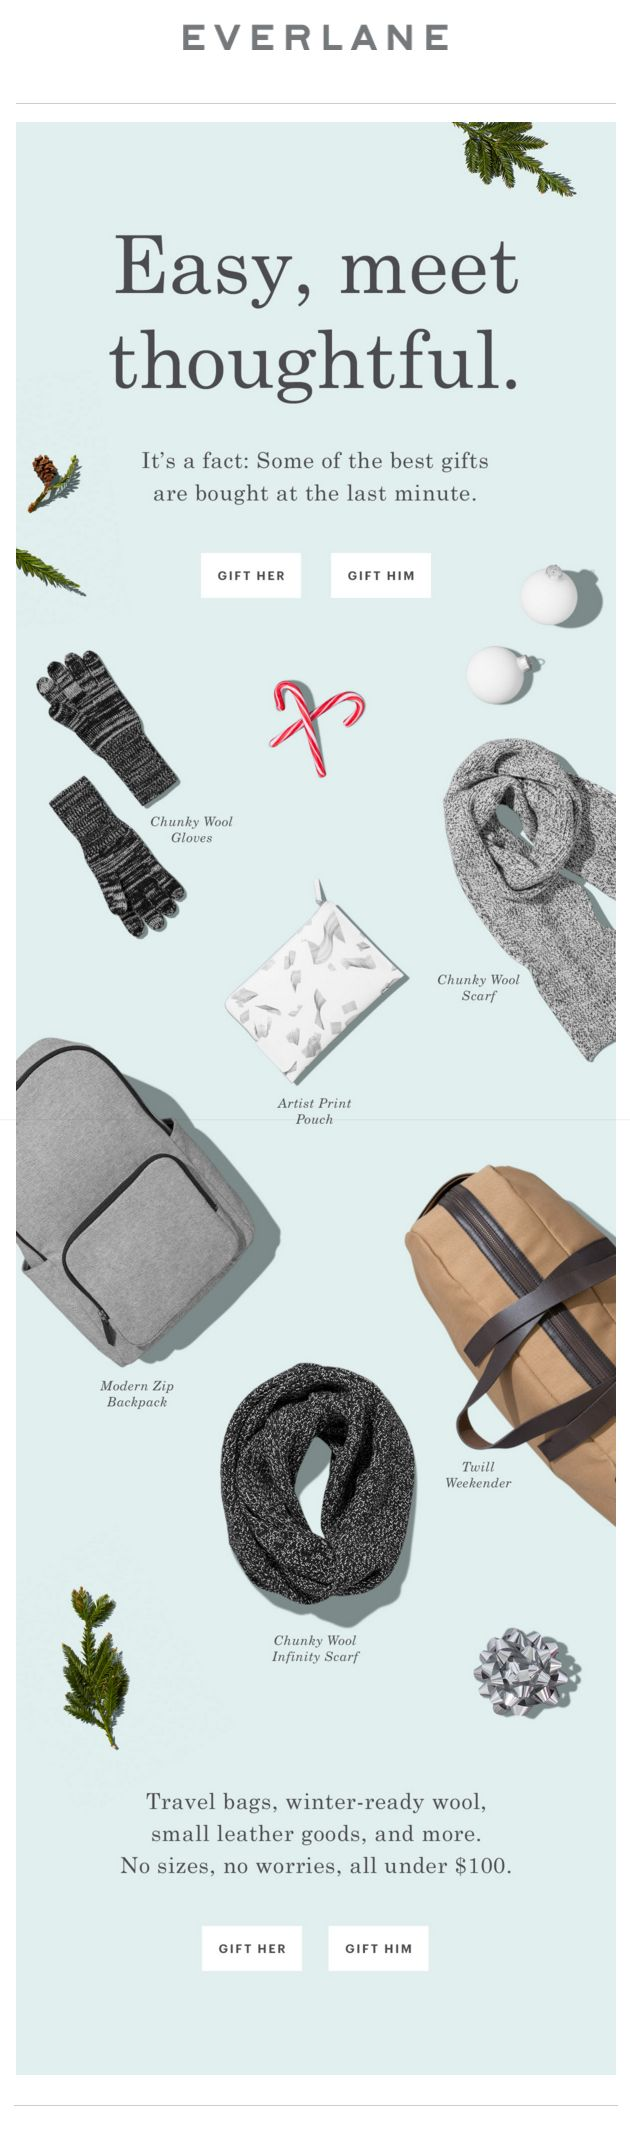 Everlane Holiday Gifts email. SL: Our Easiest Gifts. Under $100.